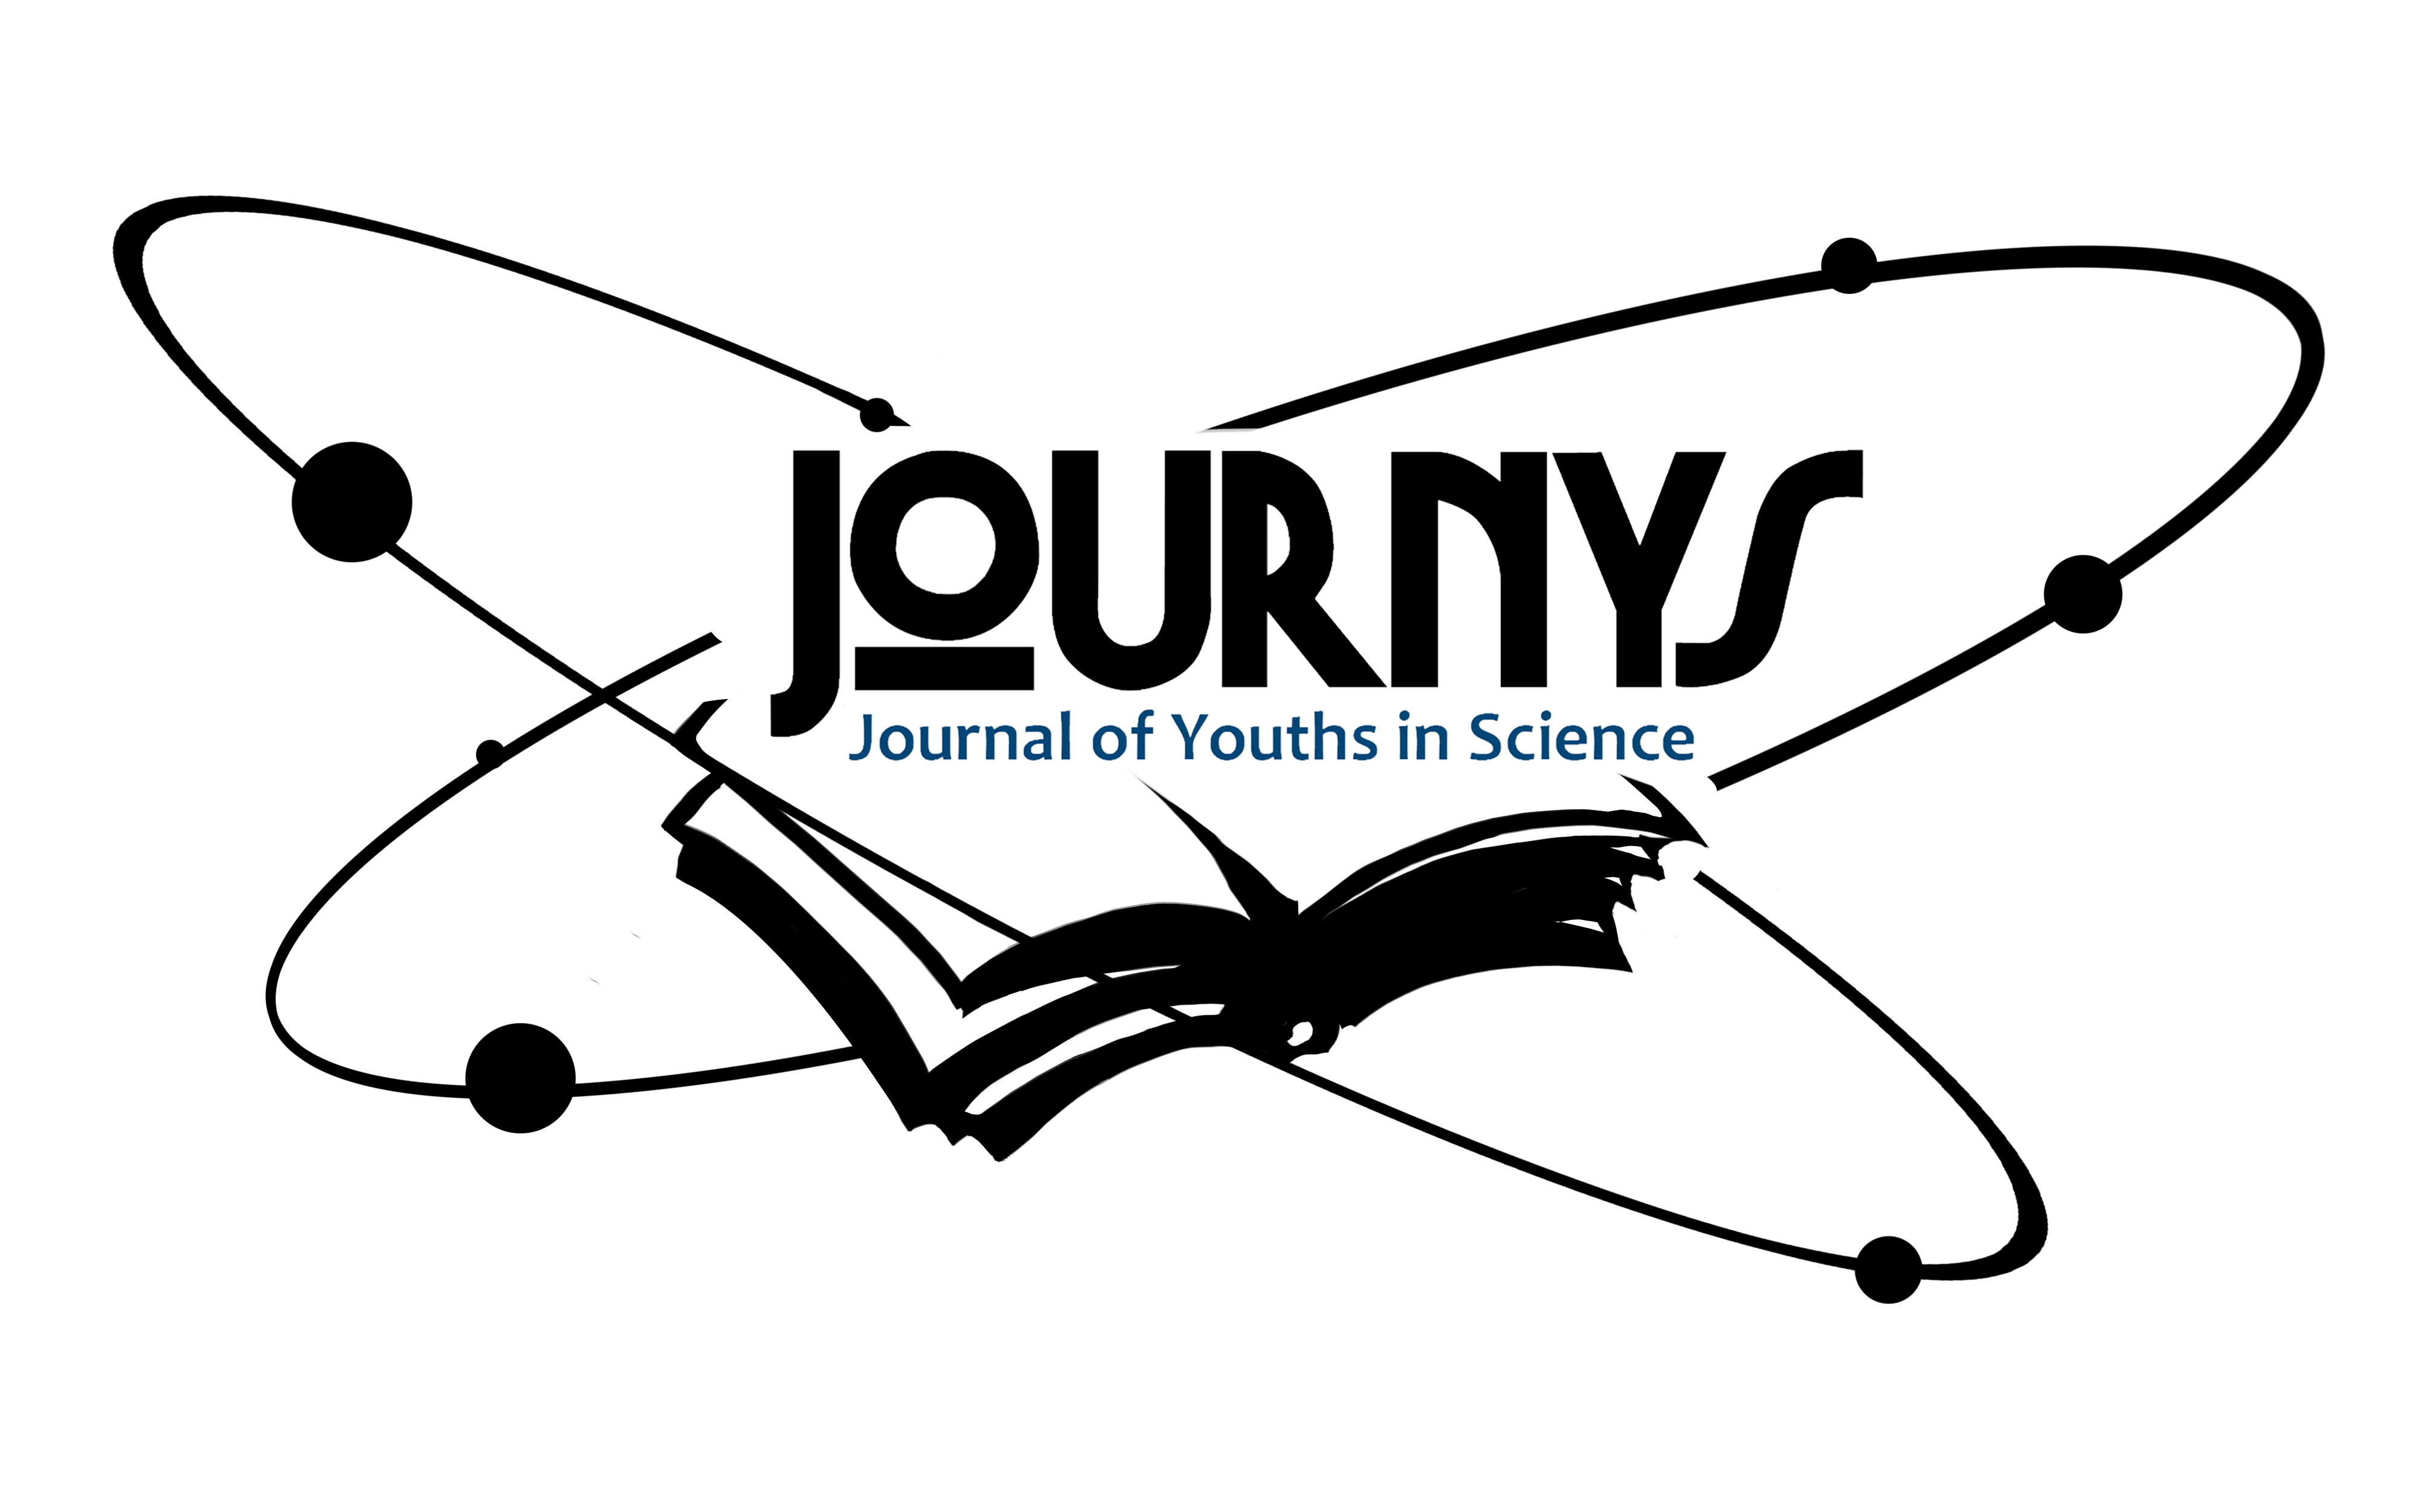 Journal clipart science journal. Home of youths in